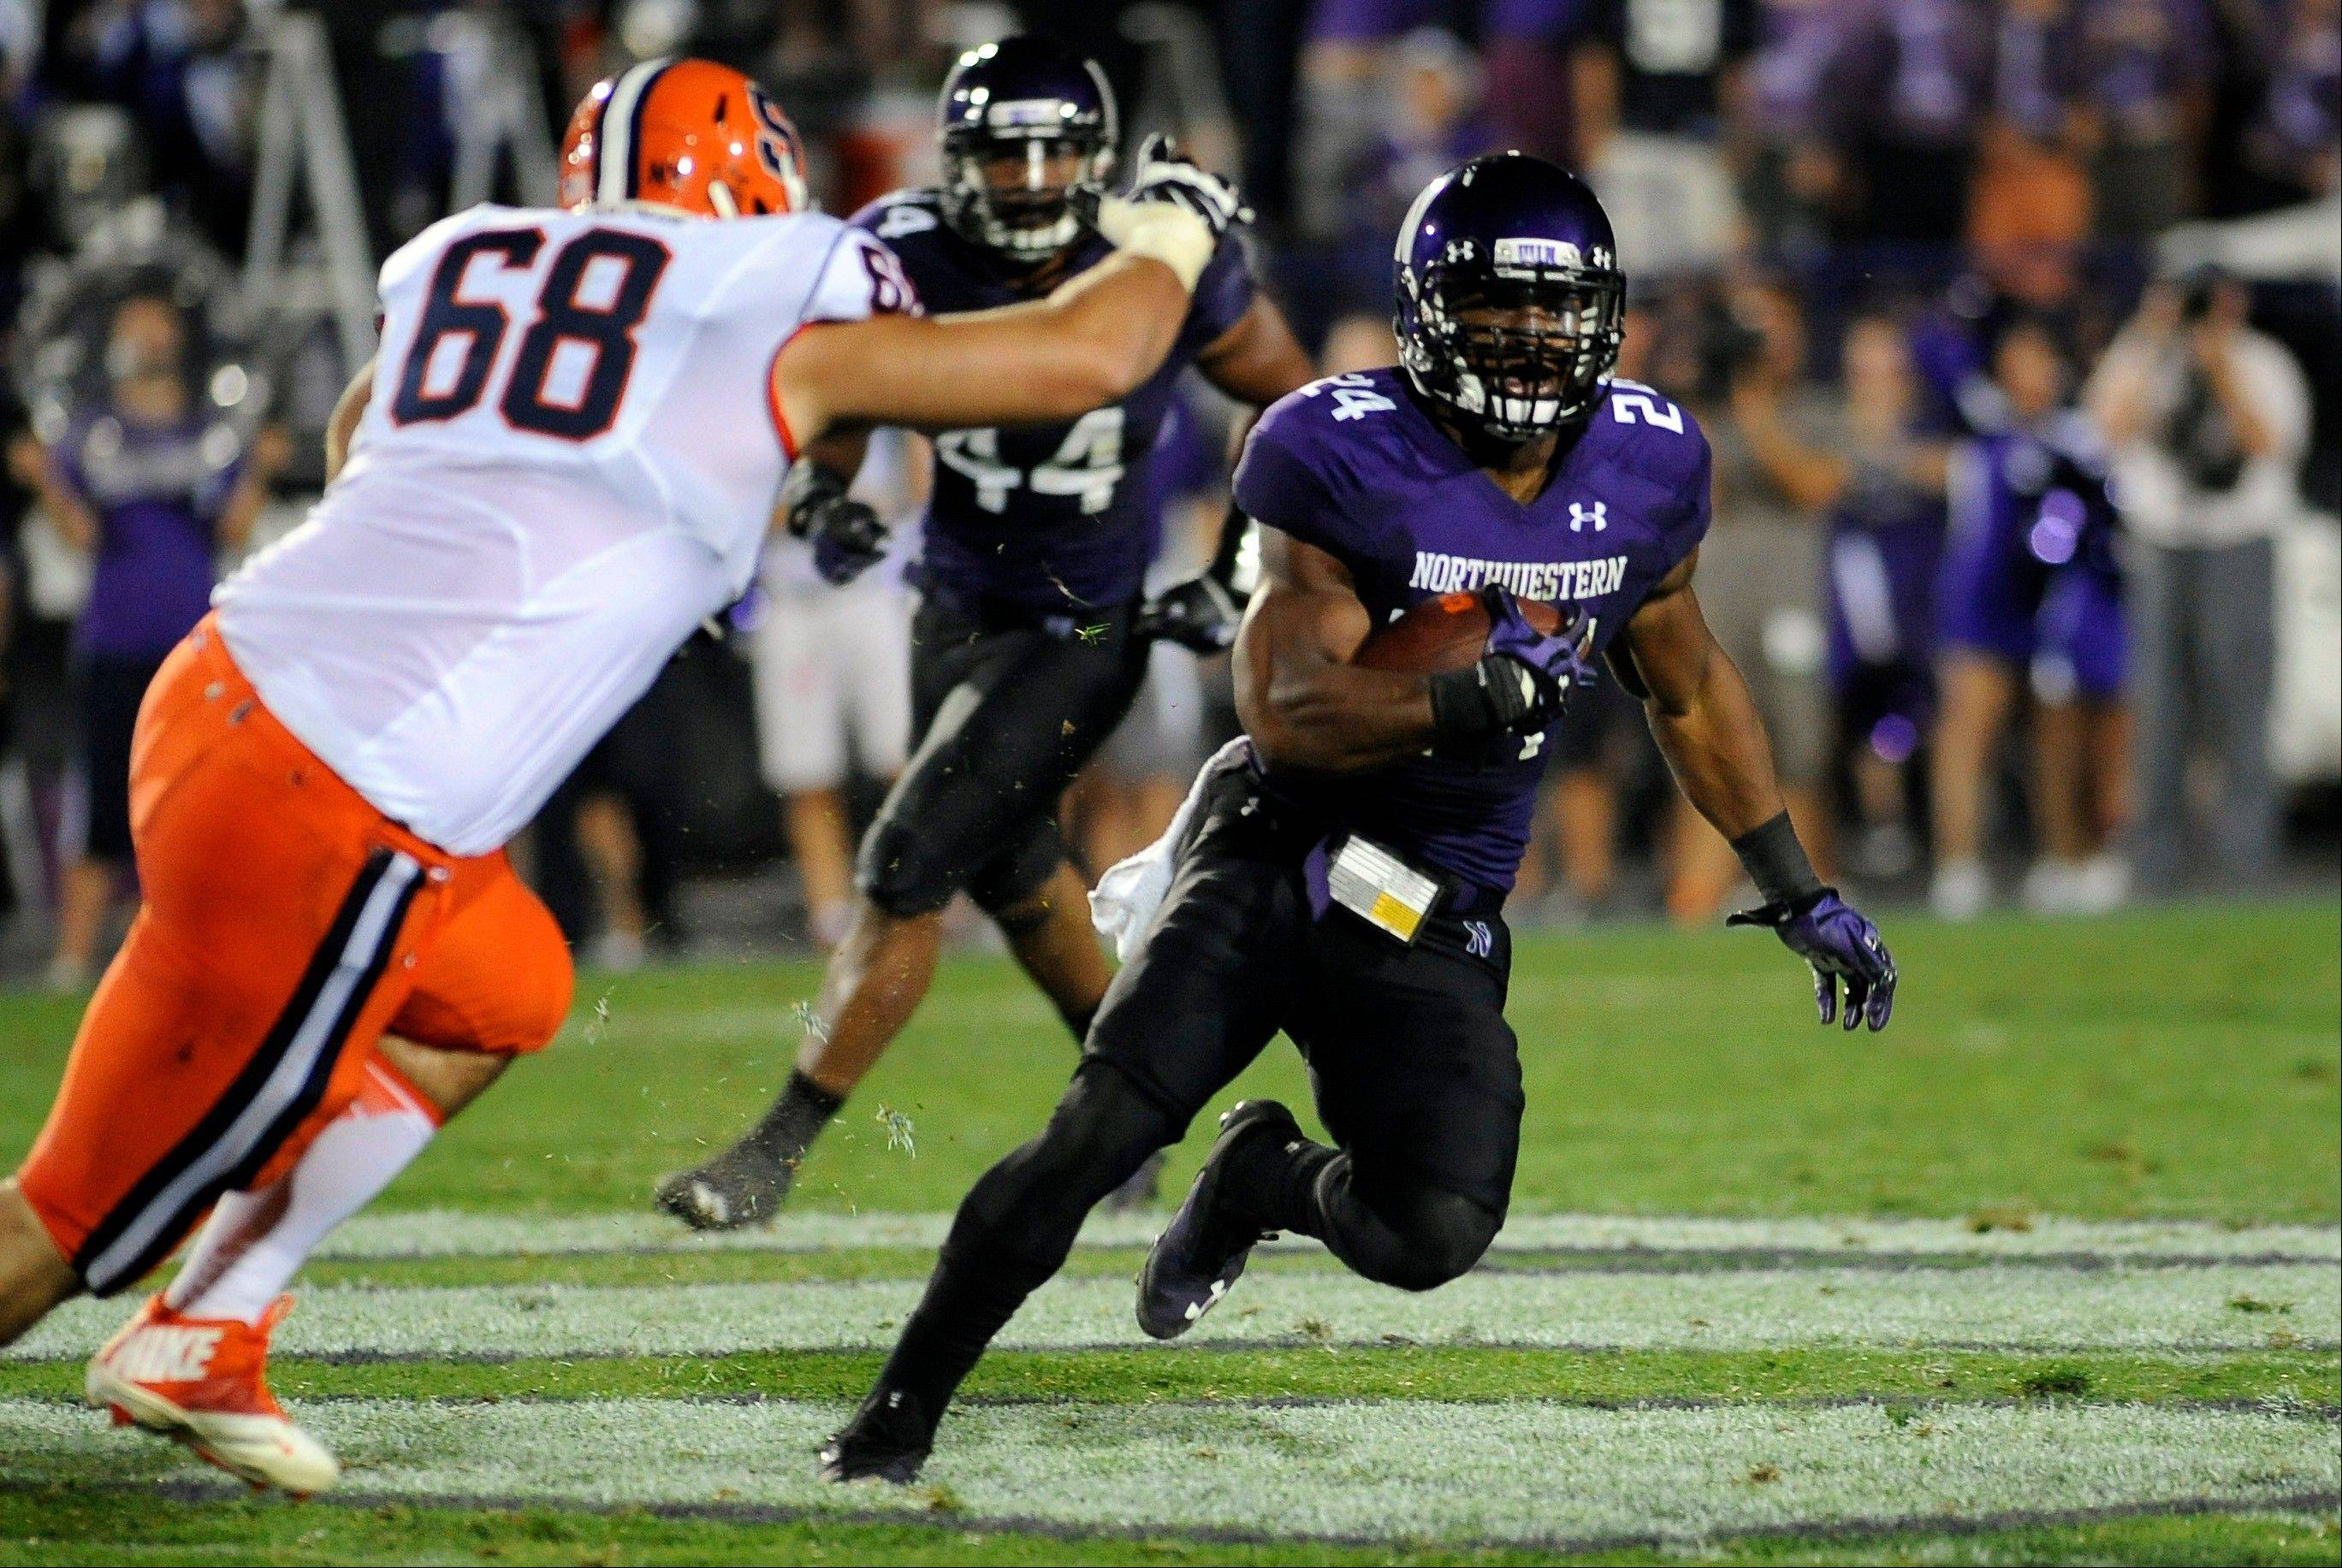 Northwestern�s Ibraheim Campbell runs with an interception against Syracuse at Ryan Field. Northwestern announced Tuesday it will play host to Northern Illinois next season.